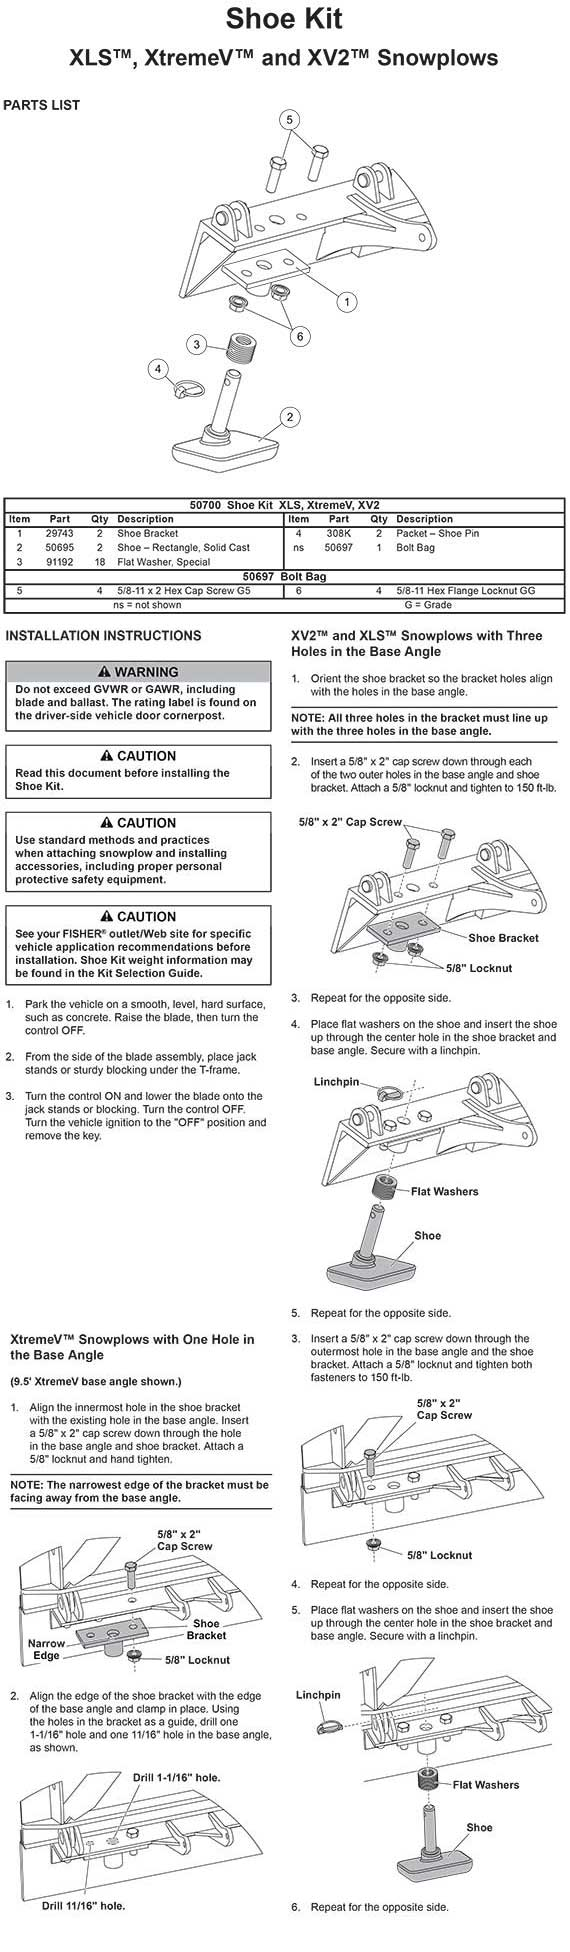 2004 ford ranger fog light wiring diagram html